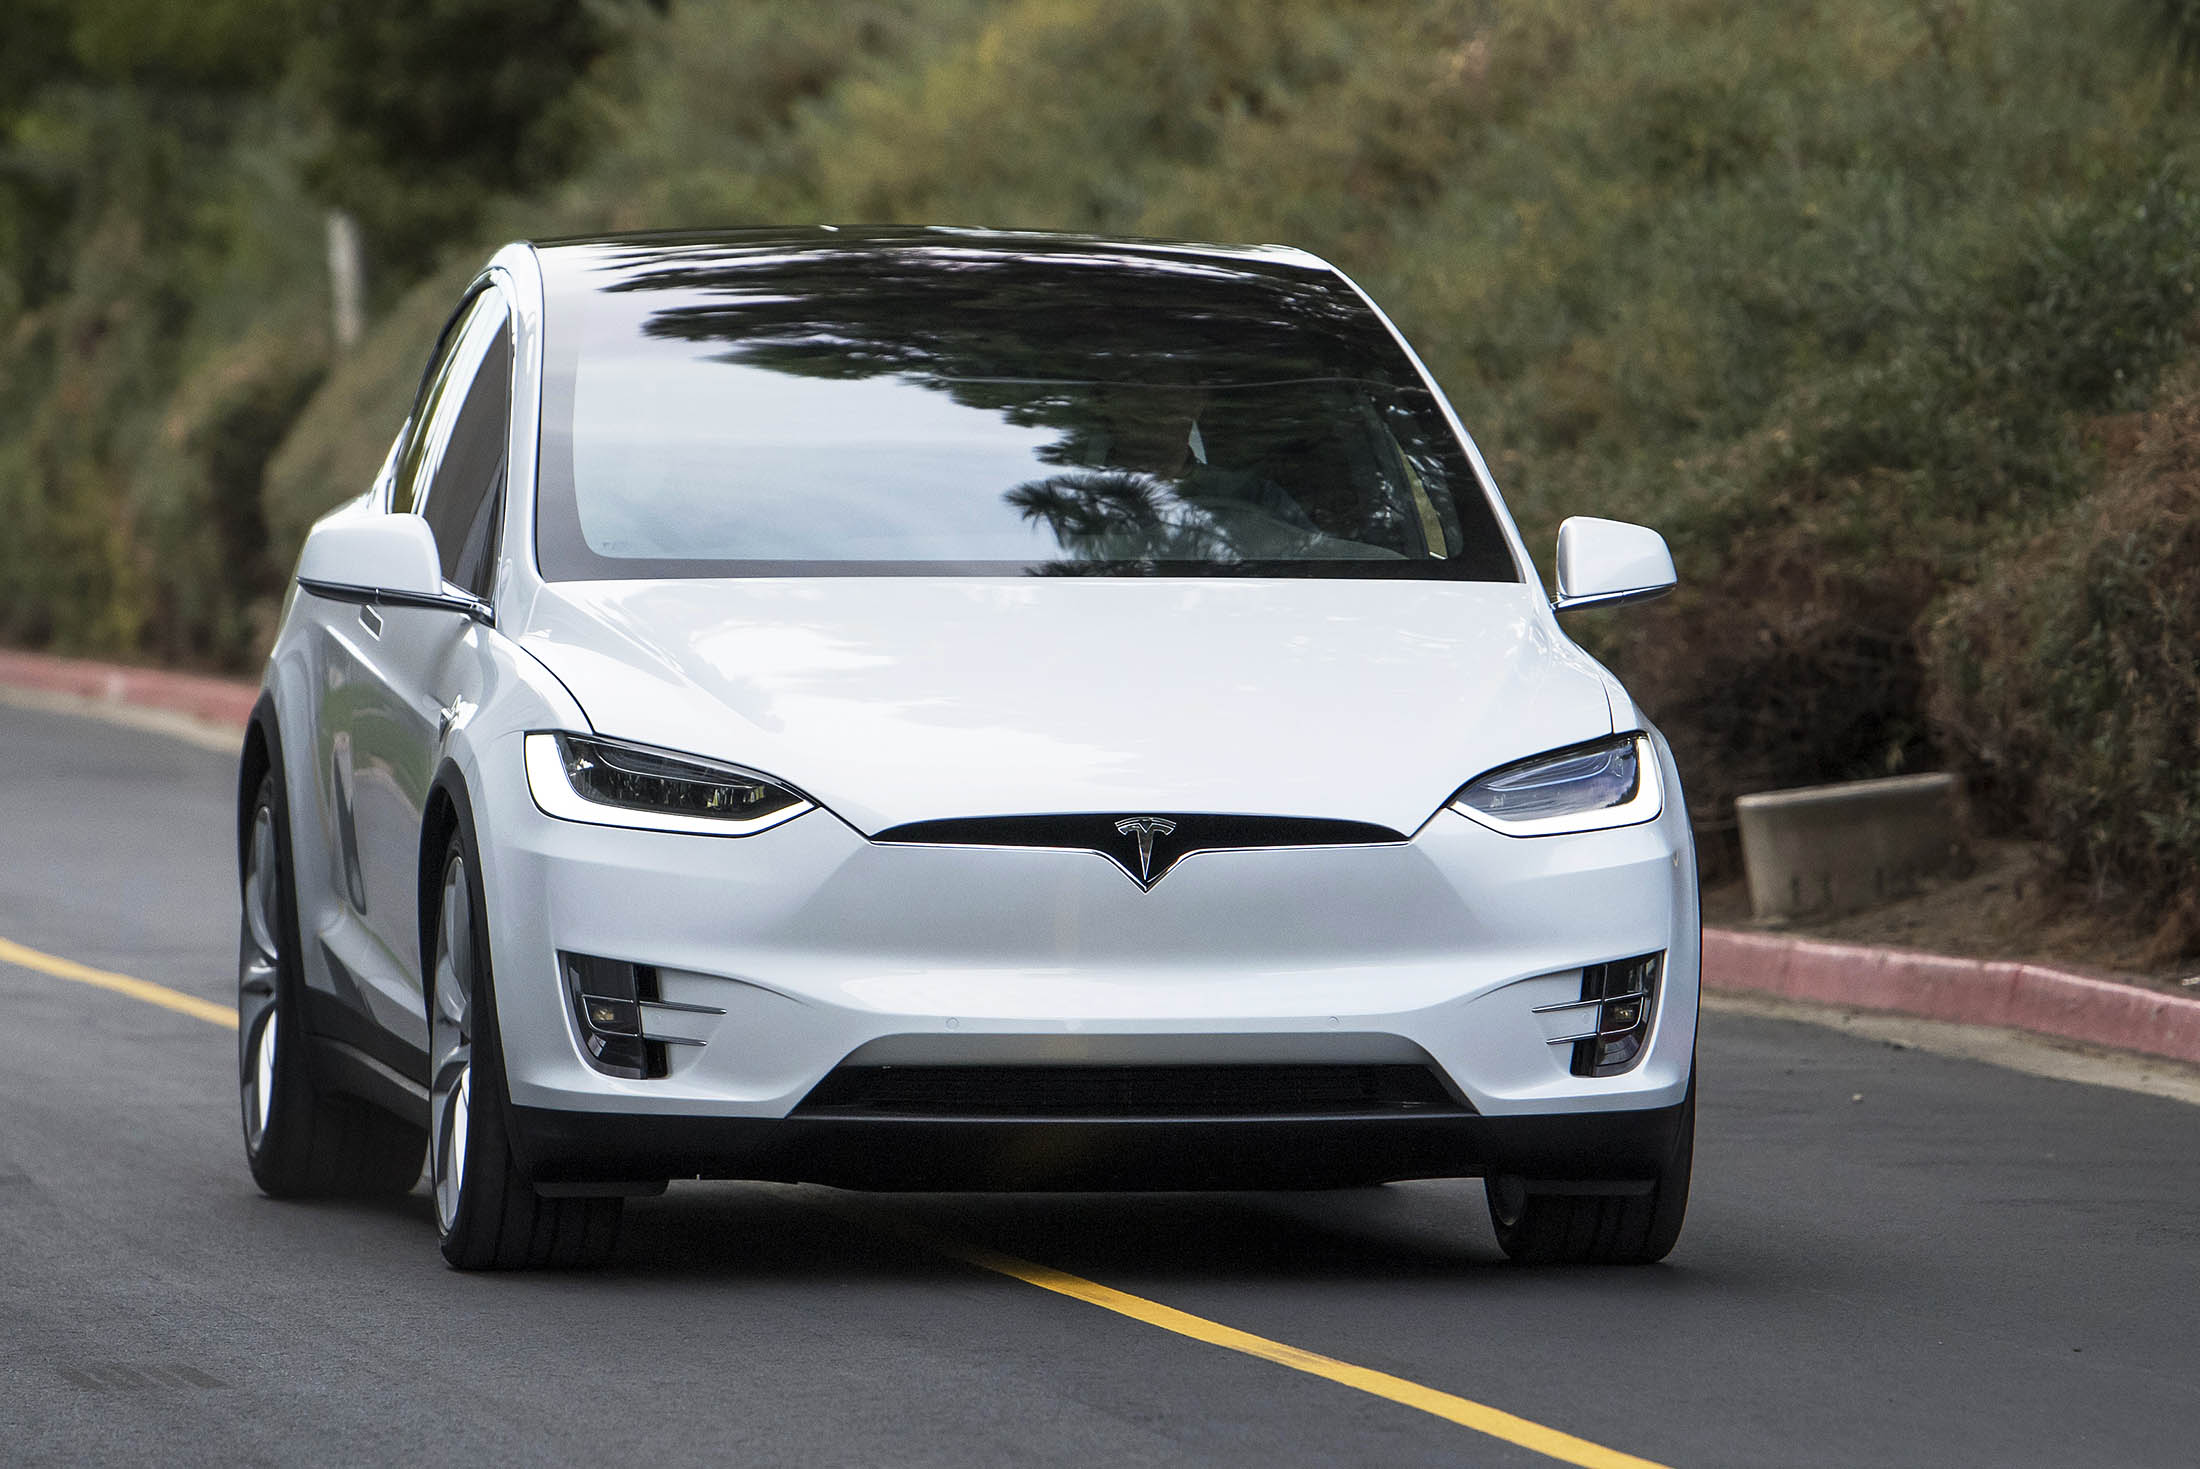 First Drive: The New Tesla Model X SUV Has Some Surprises - Bloomberg